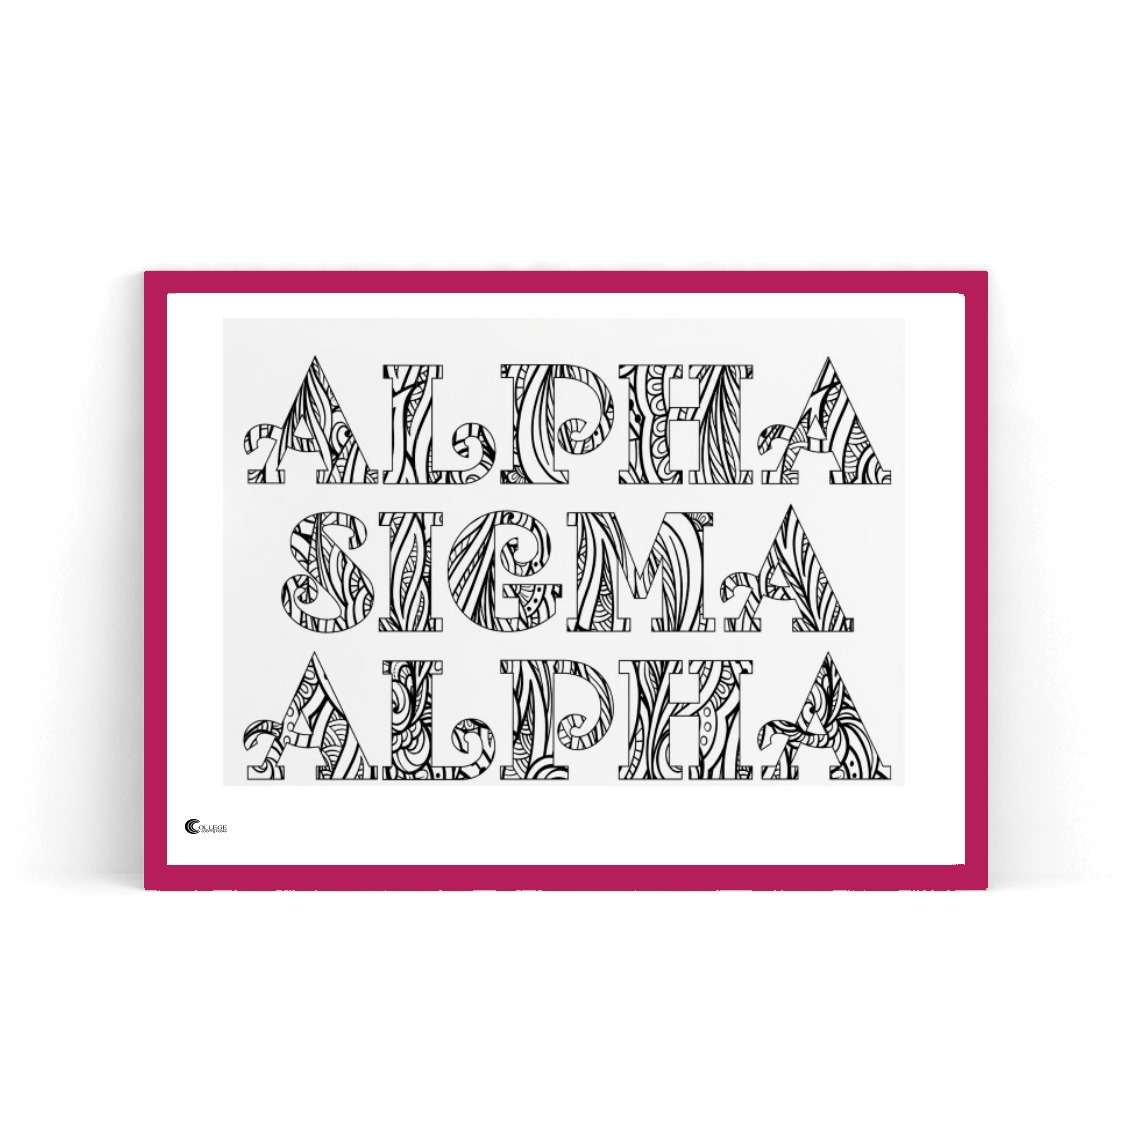 College Coloring Books Alpha Sigma Alpha Coloring Poster in Red Frame